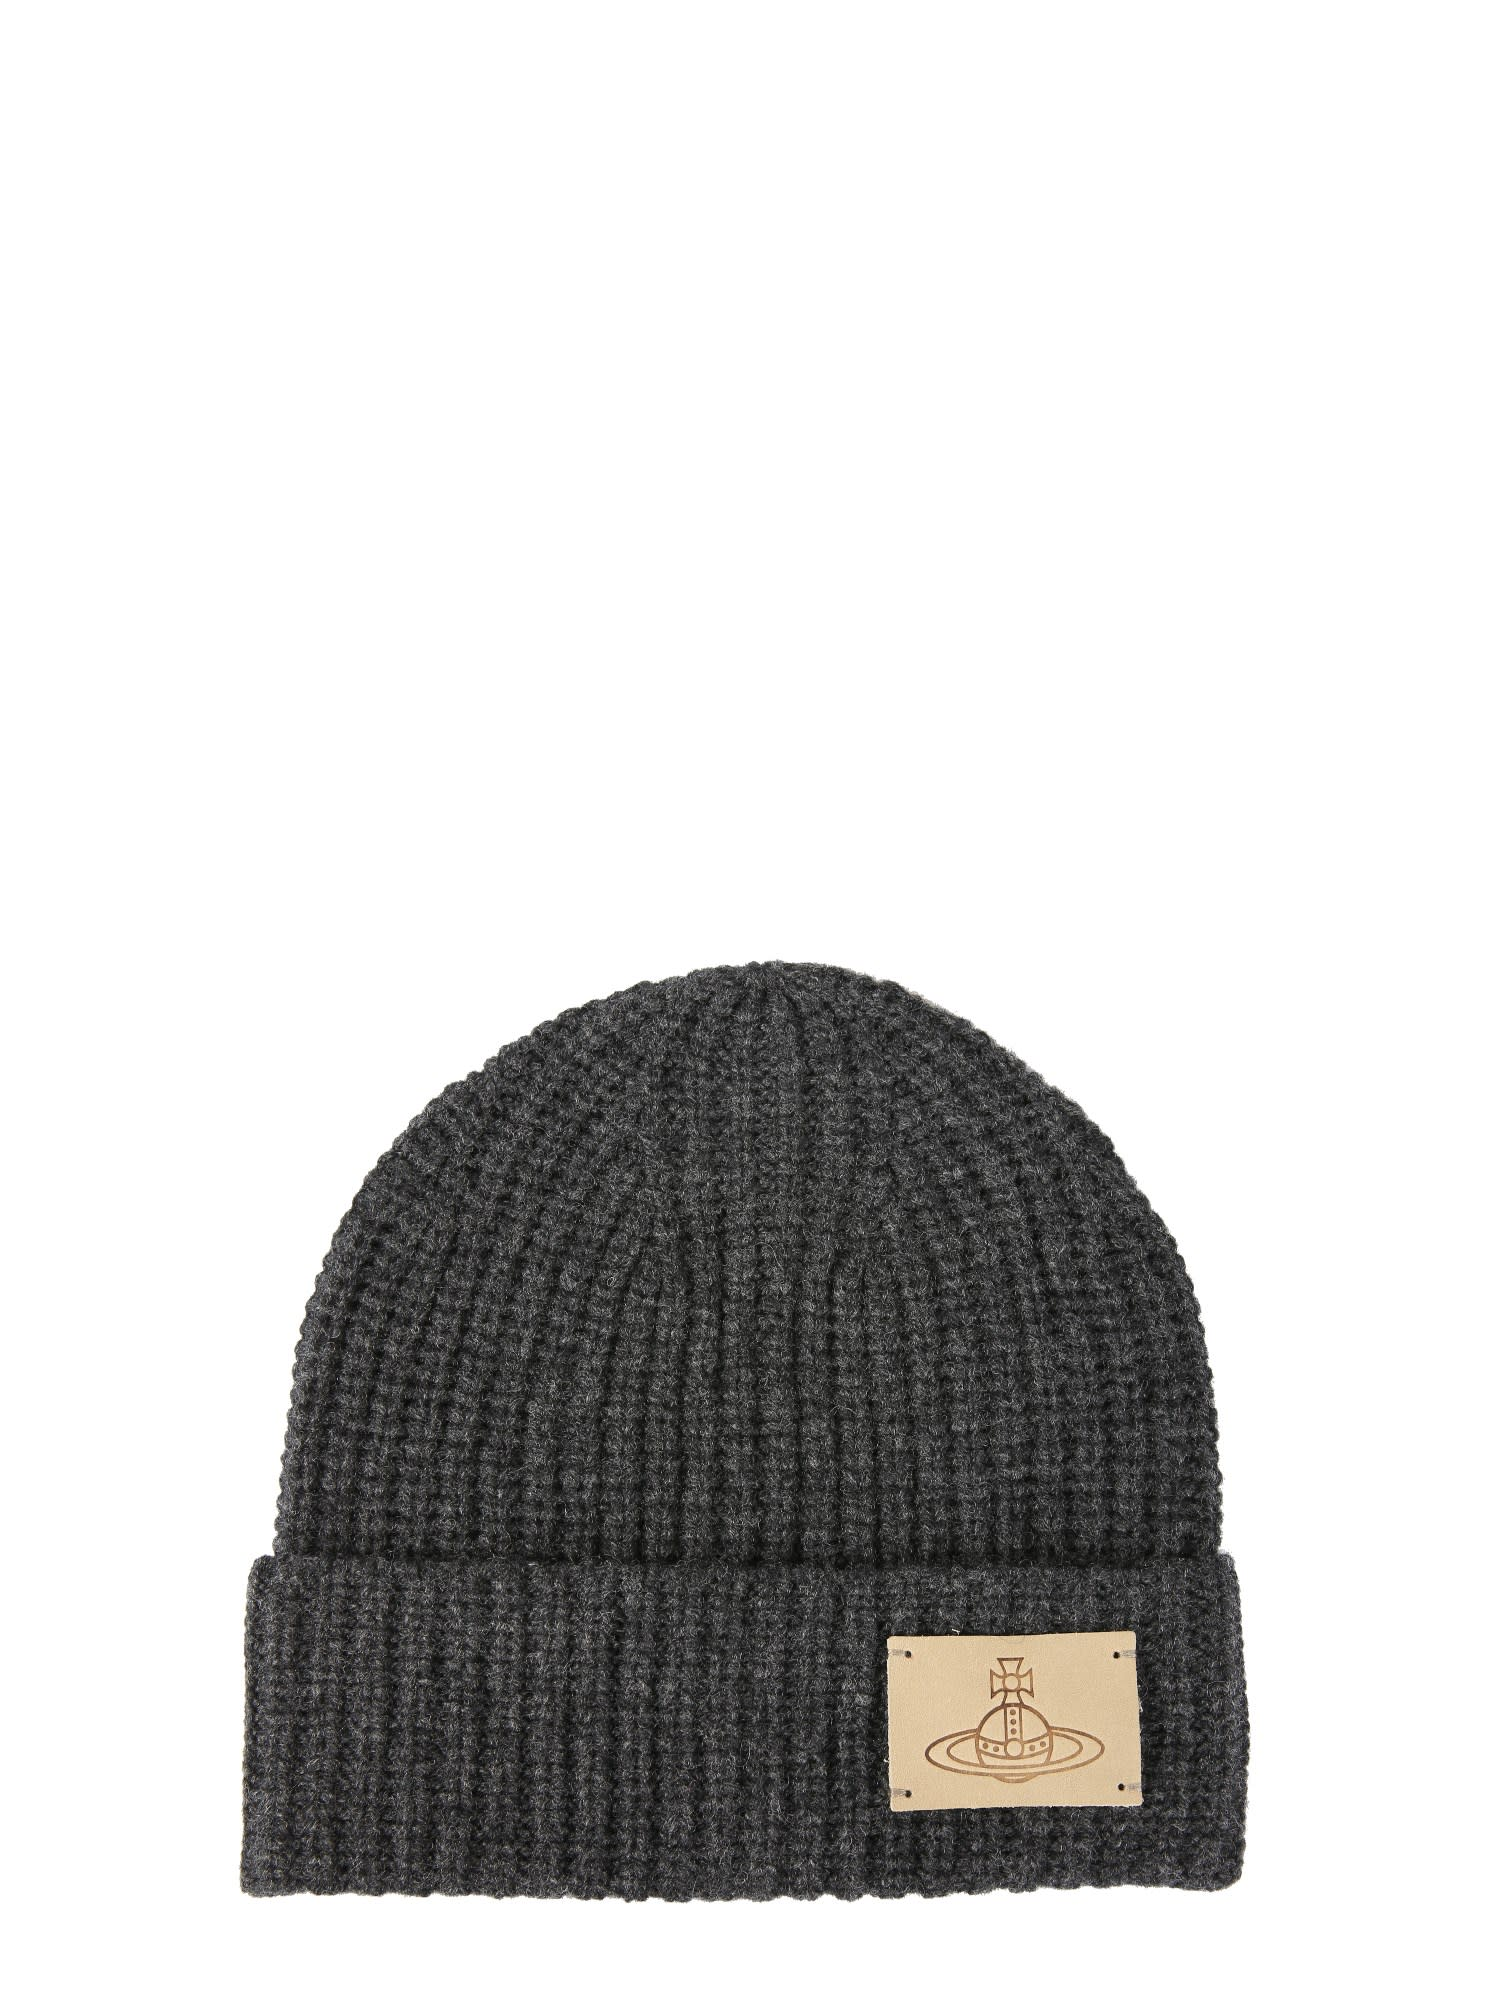 Vivienne Westwood Hats KNITTED HAT